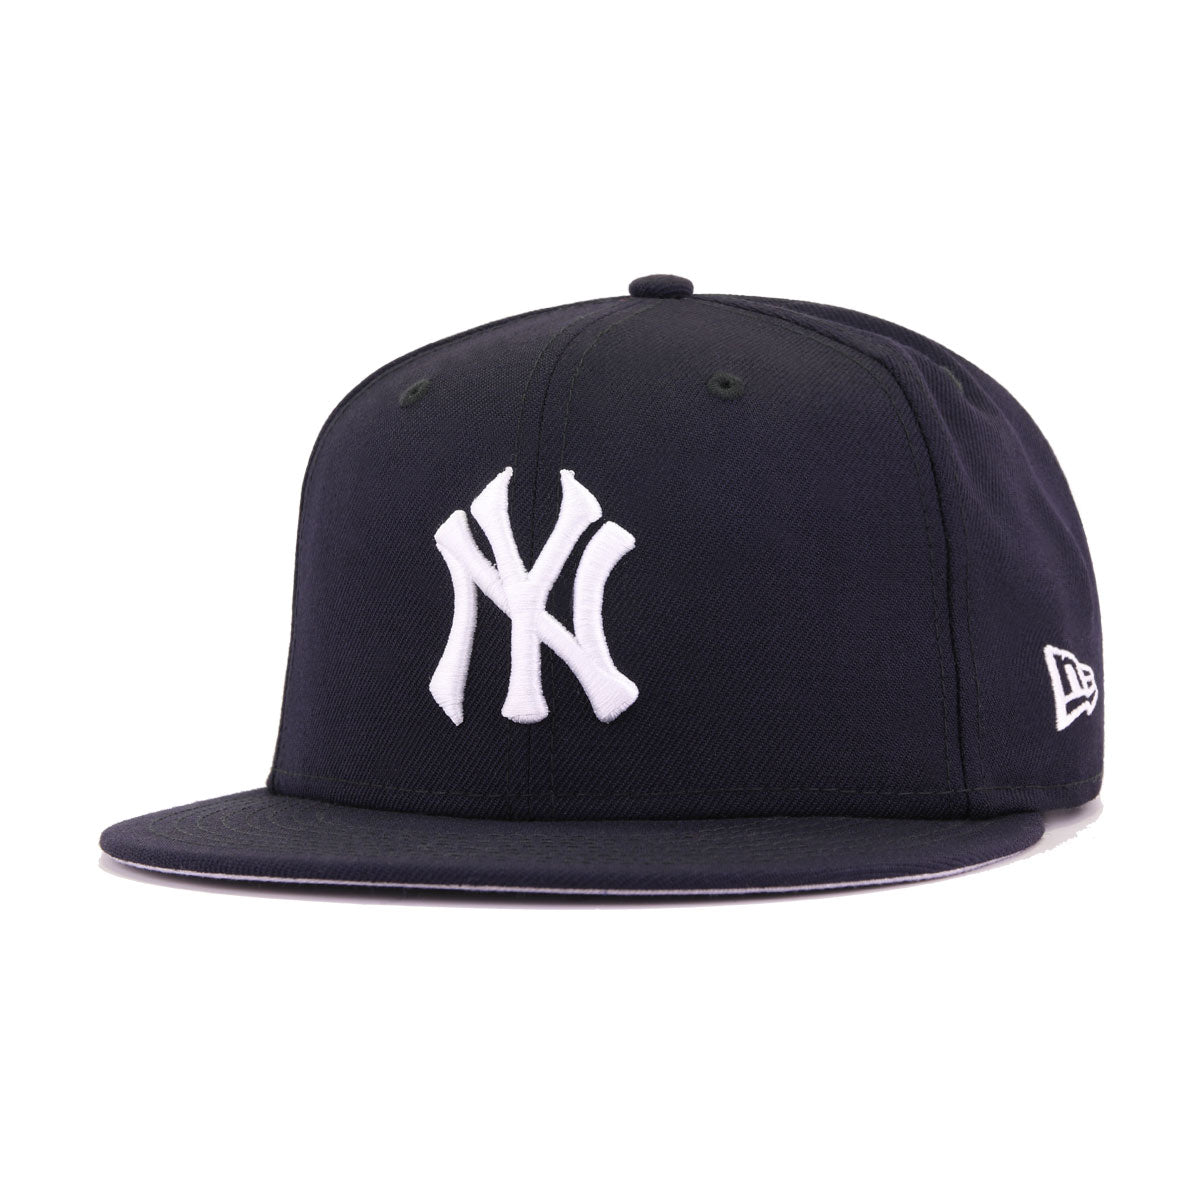 New York Yankees Navy 1952 World Series Cooperstown New Era 59Fifty Fitted